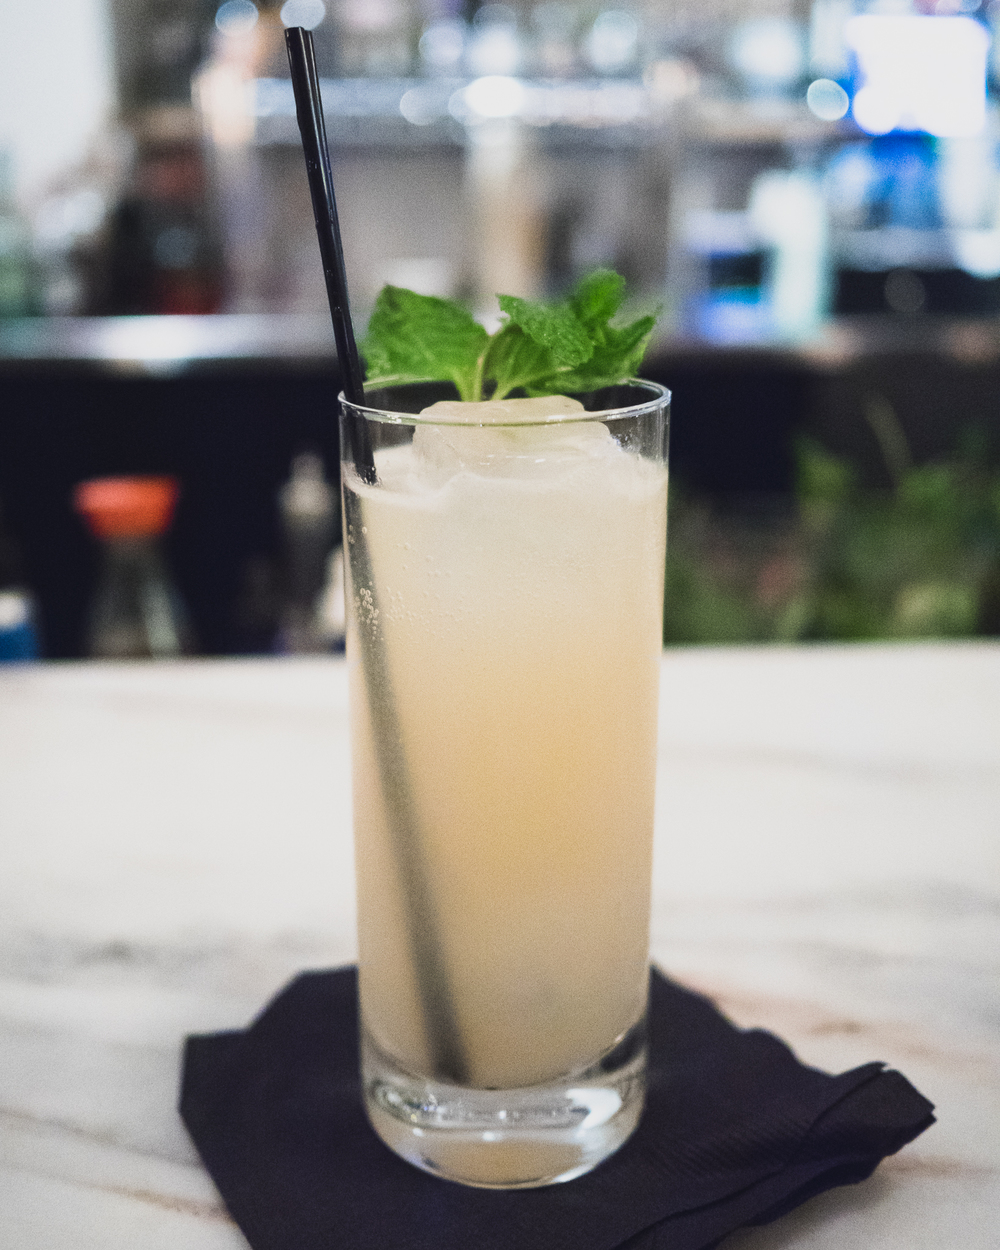 banana mule: banana infused gin, galangal/ginger/lemongrass syrup, mint, lime